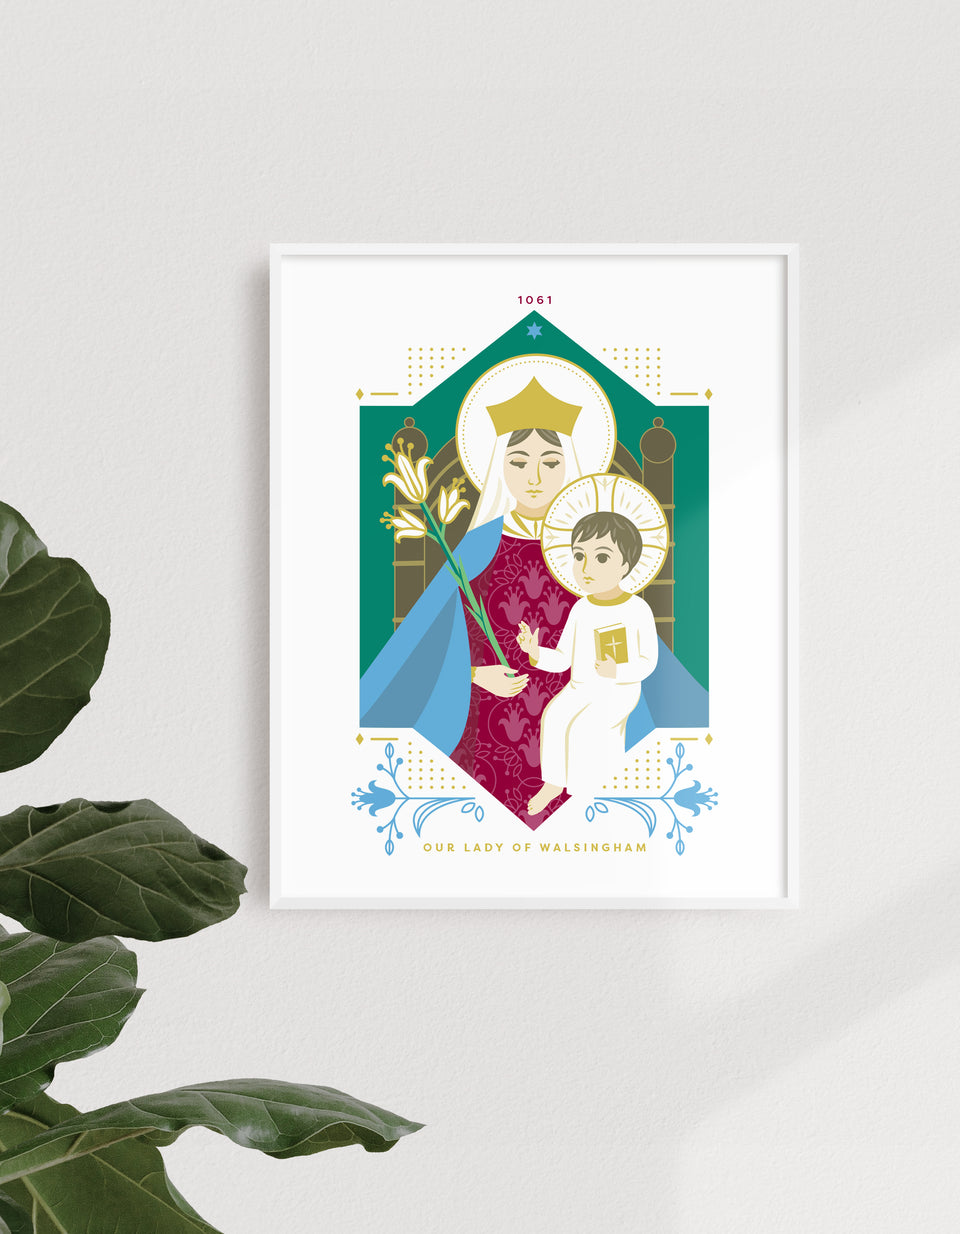 Print: Our Lady of Walsingham, Traditional, 8x10